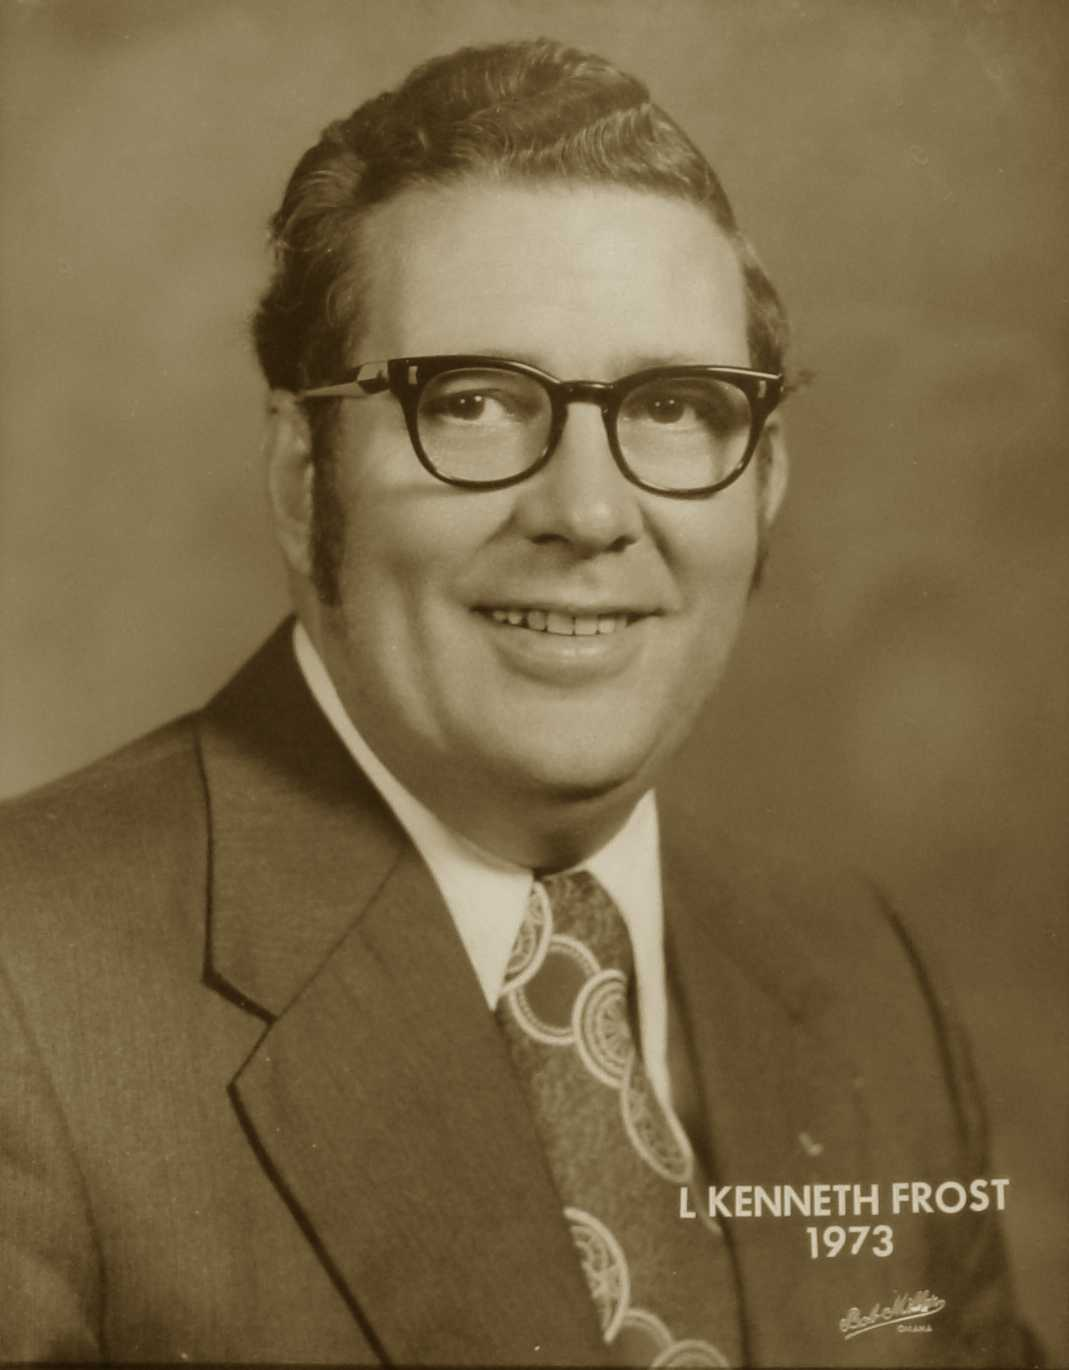 L. Kenneth Frost, 1973